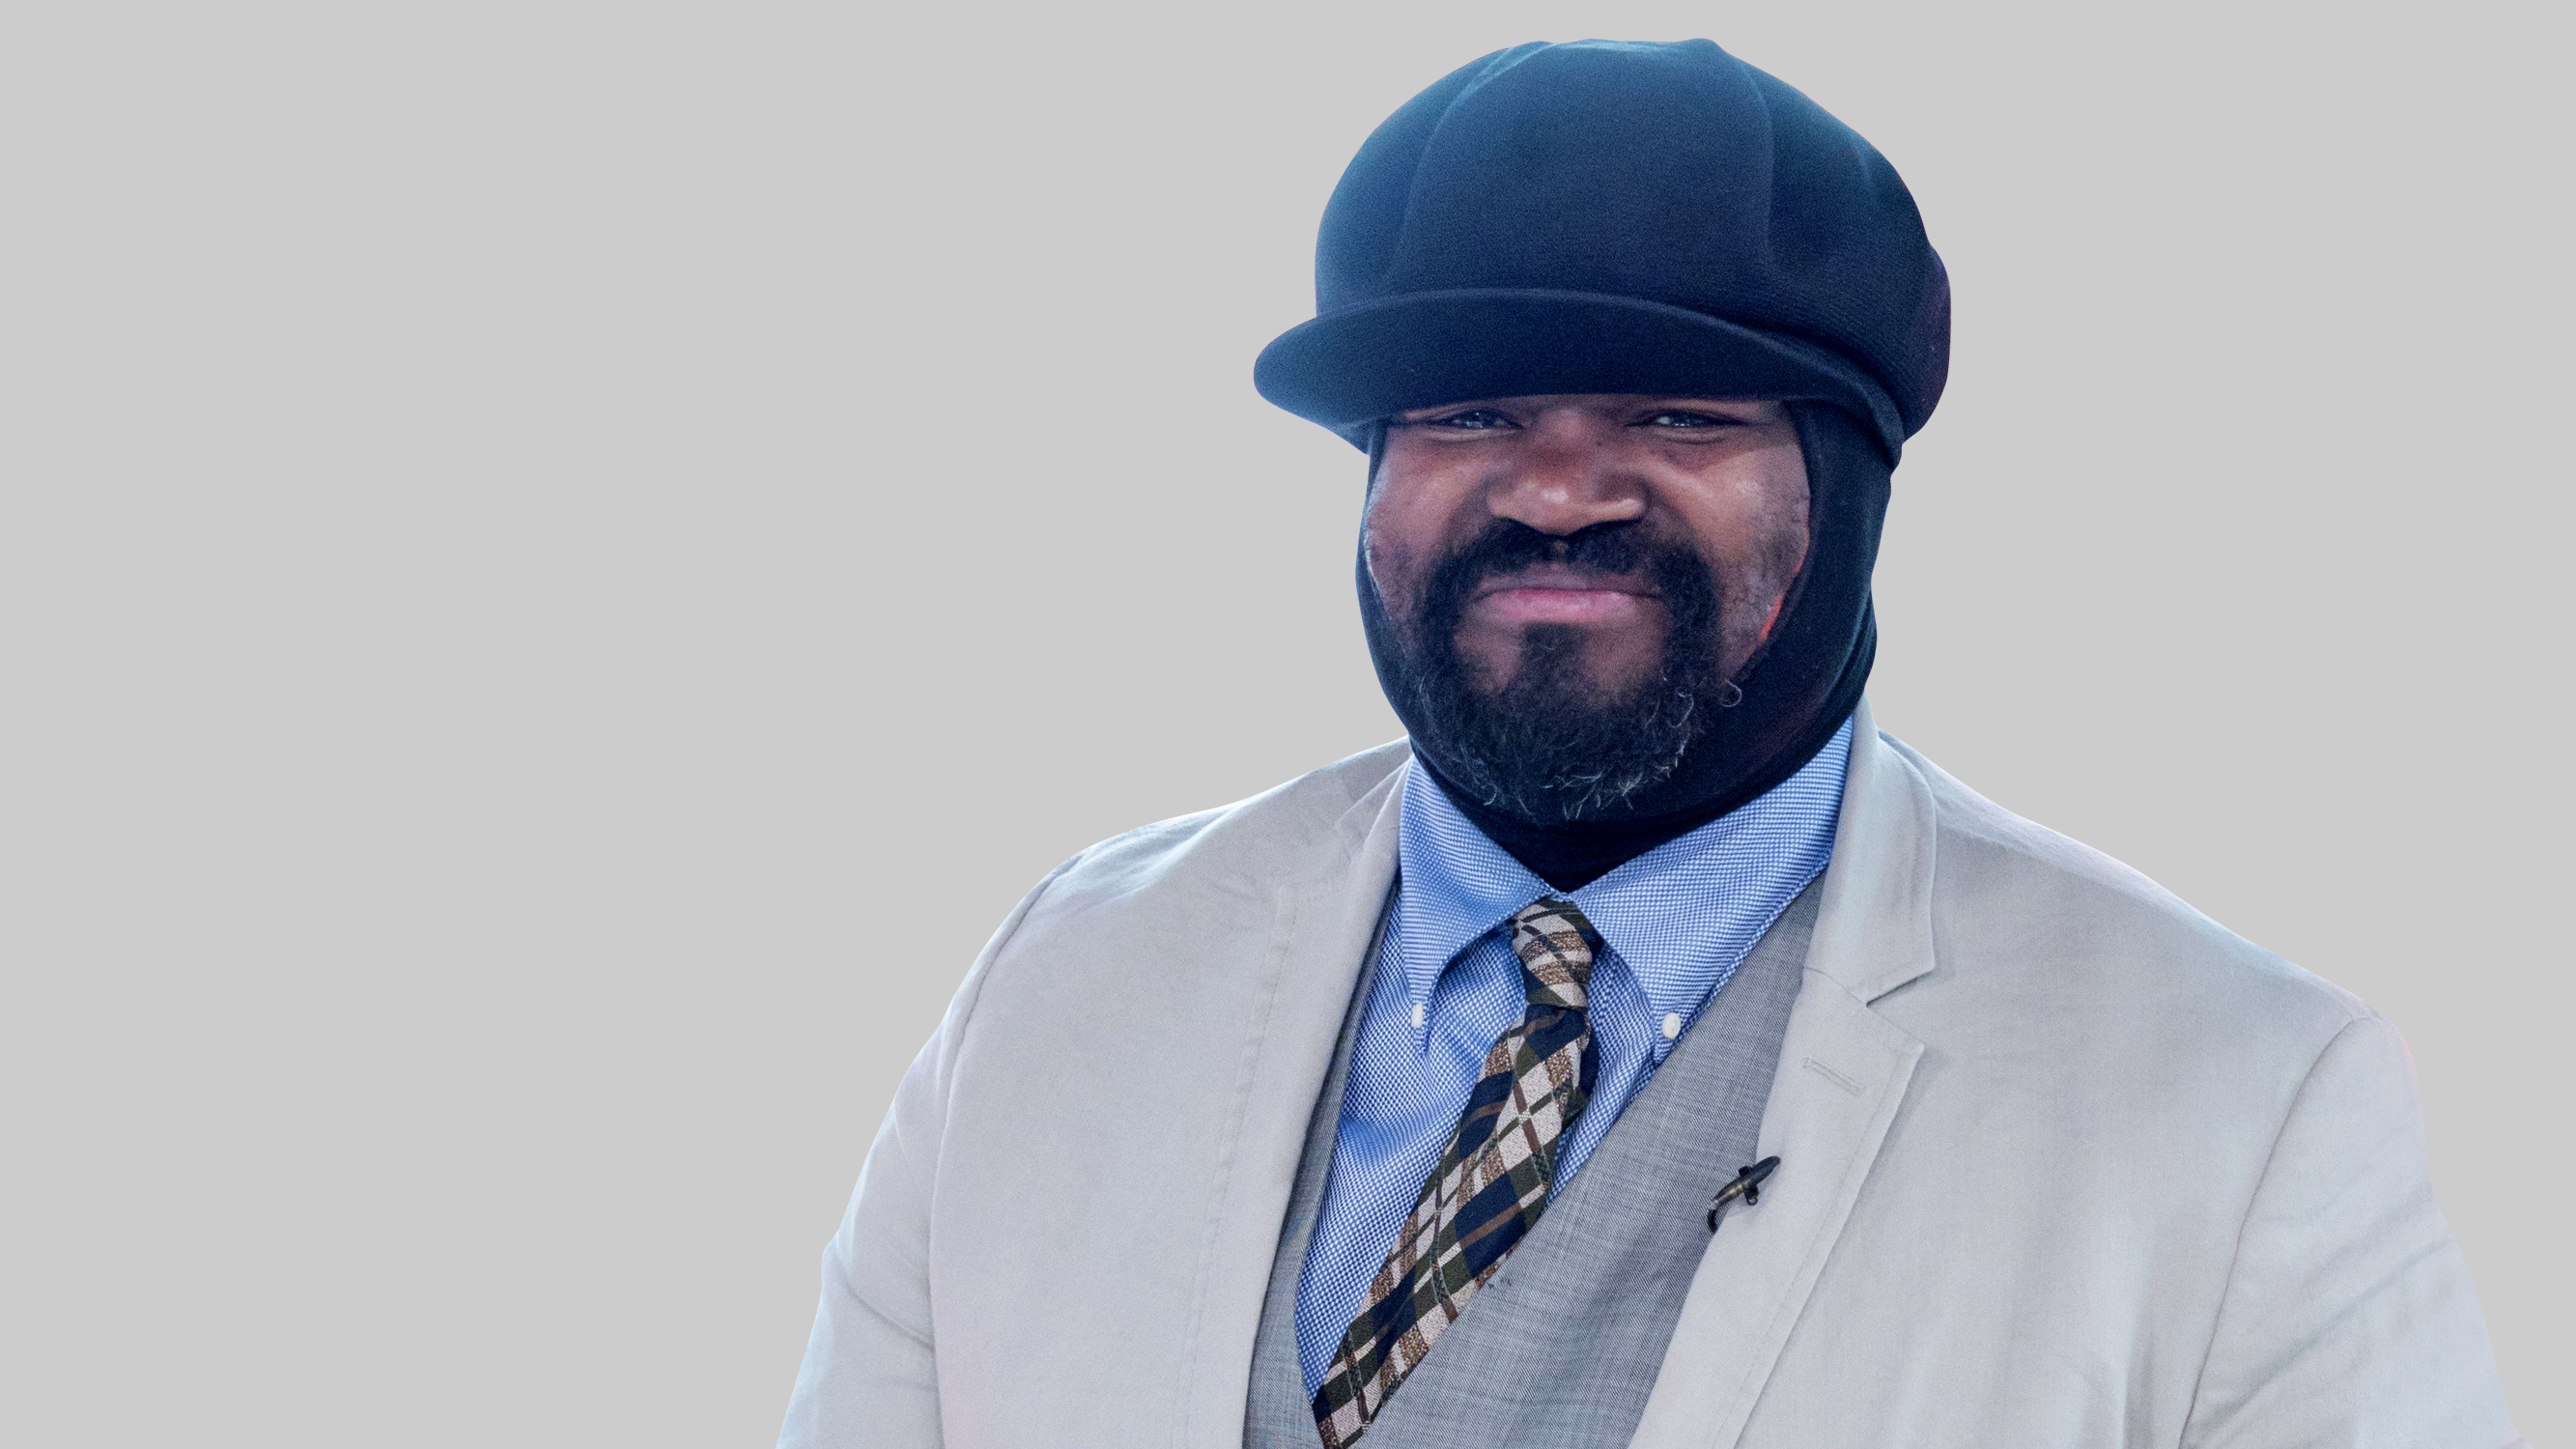 Le Meilleur My Hols Gregory Porter Travel The Sunday Times Ce Mois Ci